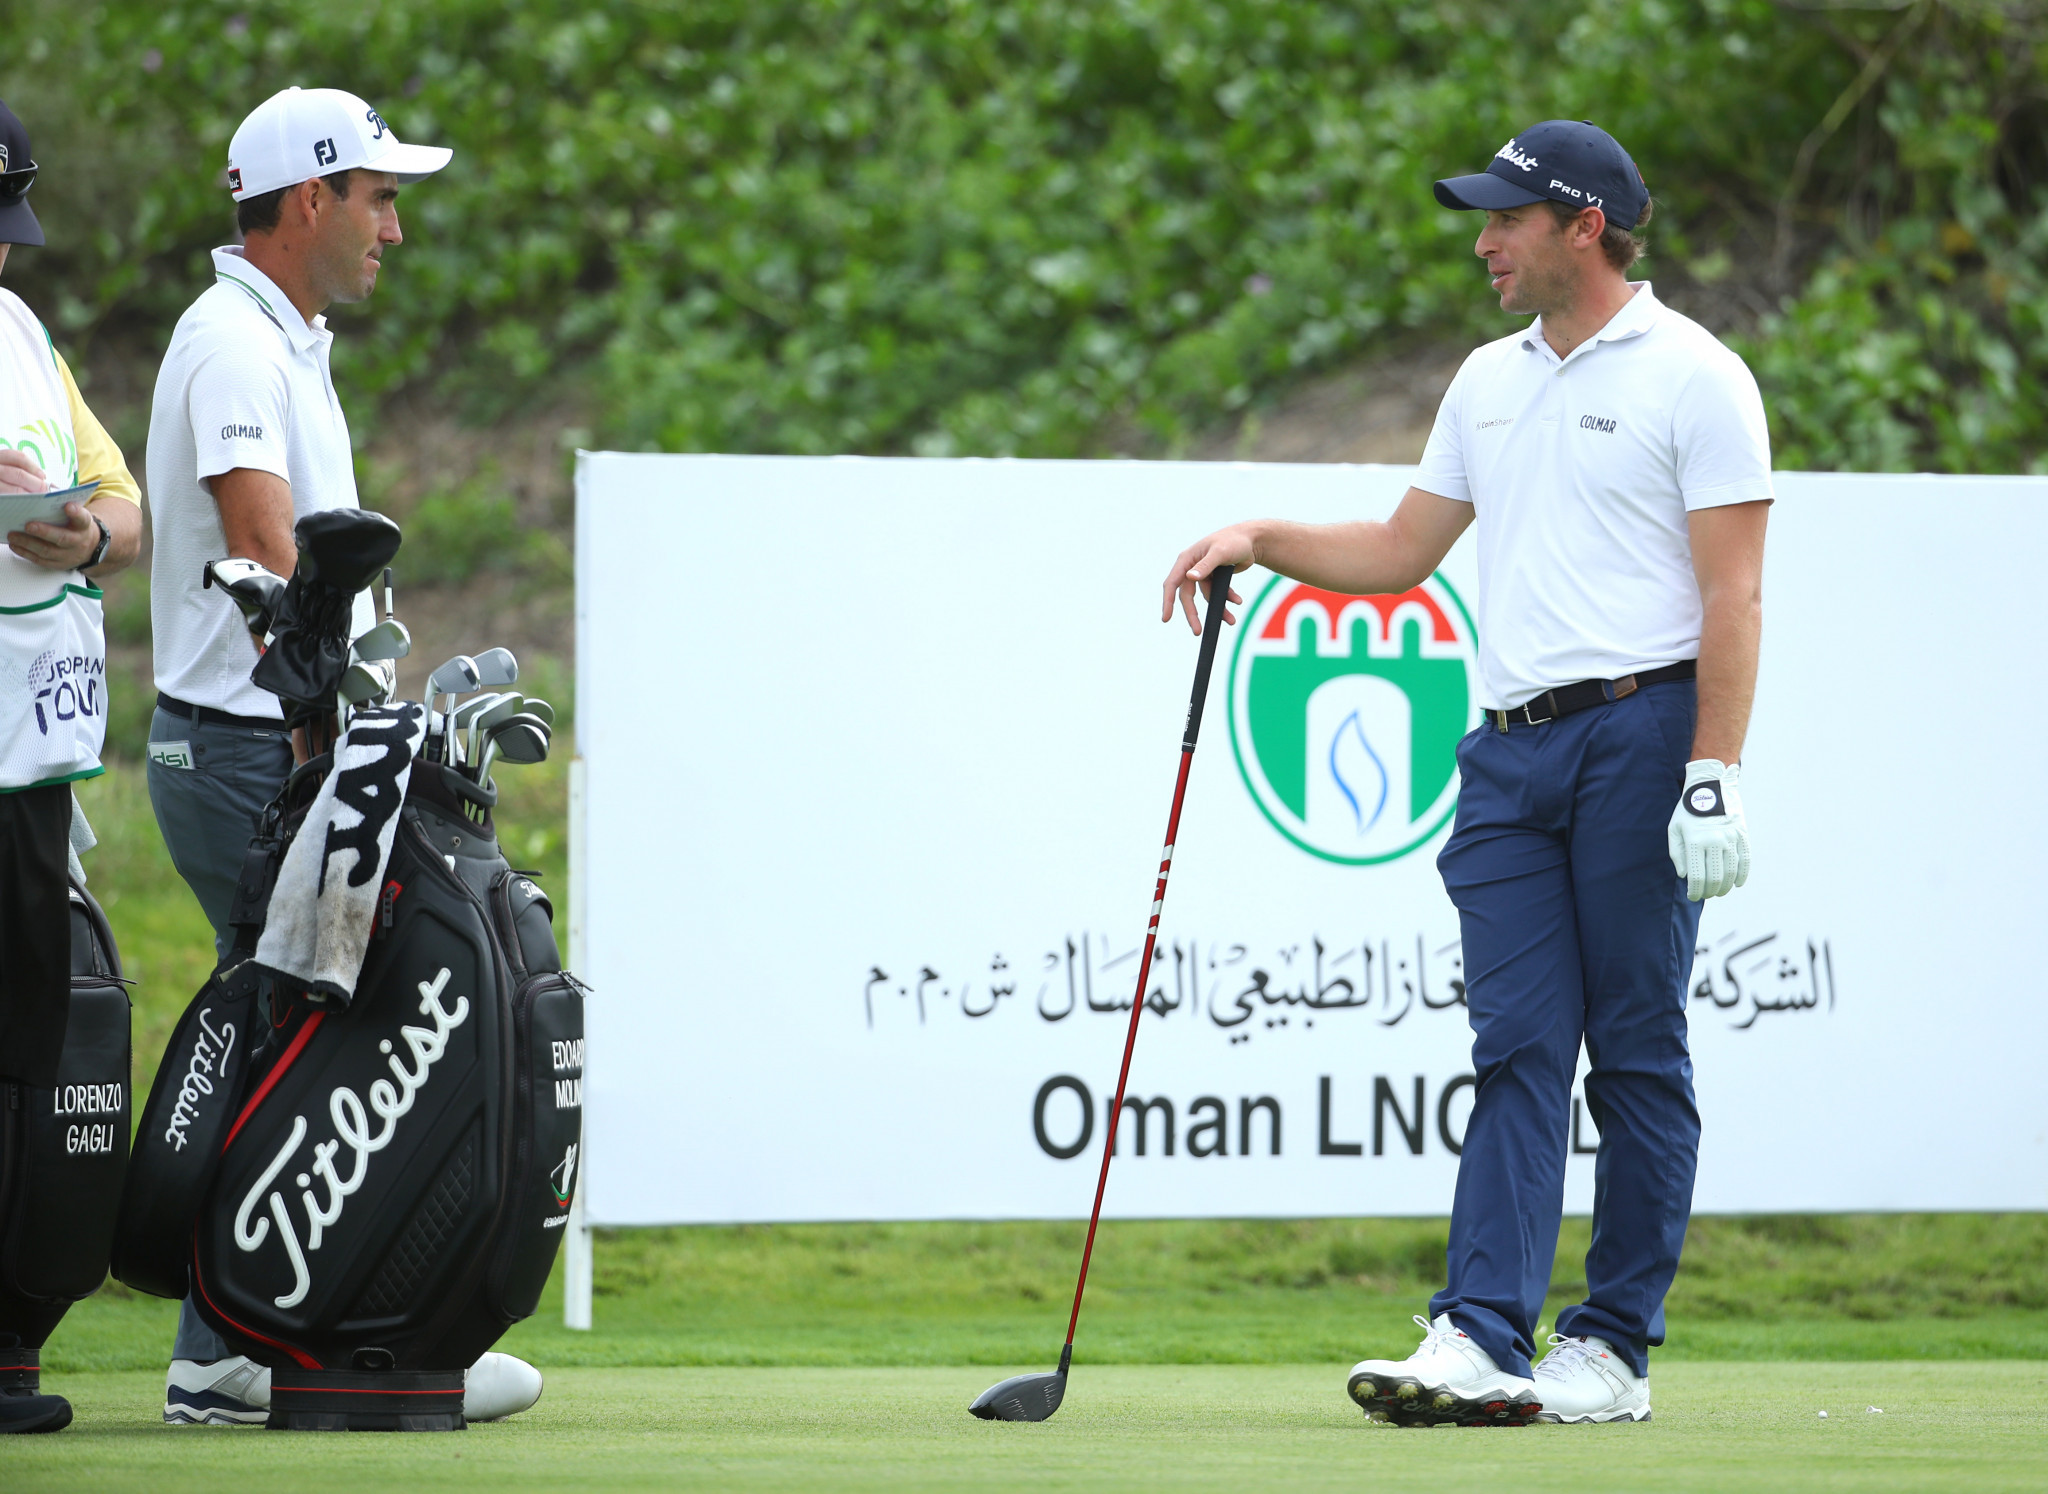 Edoardo Molinari, left, and Lorenzo Gagli chat at the Oman Open after being cleared to play ©Getty Images